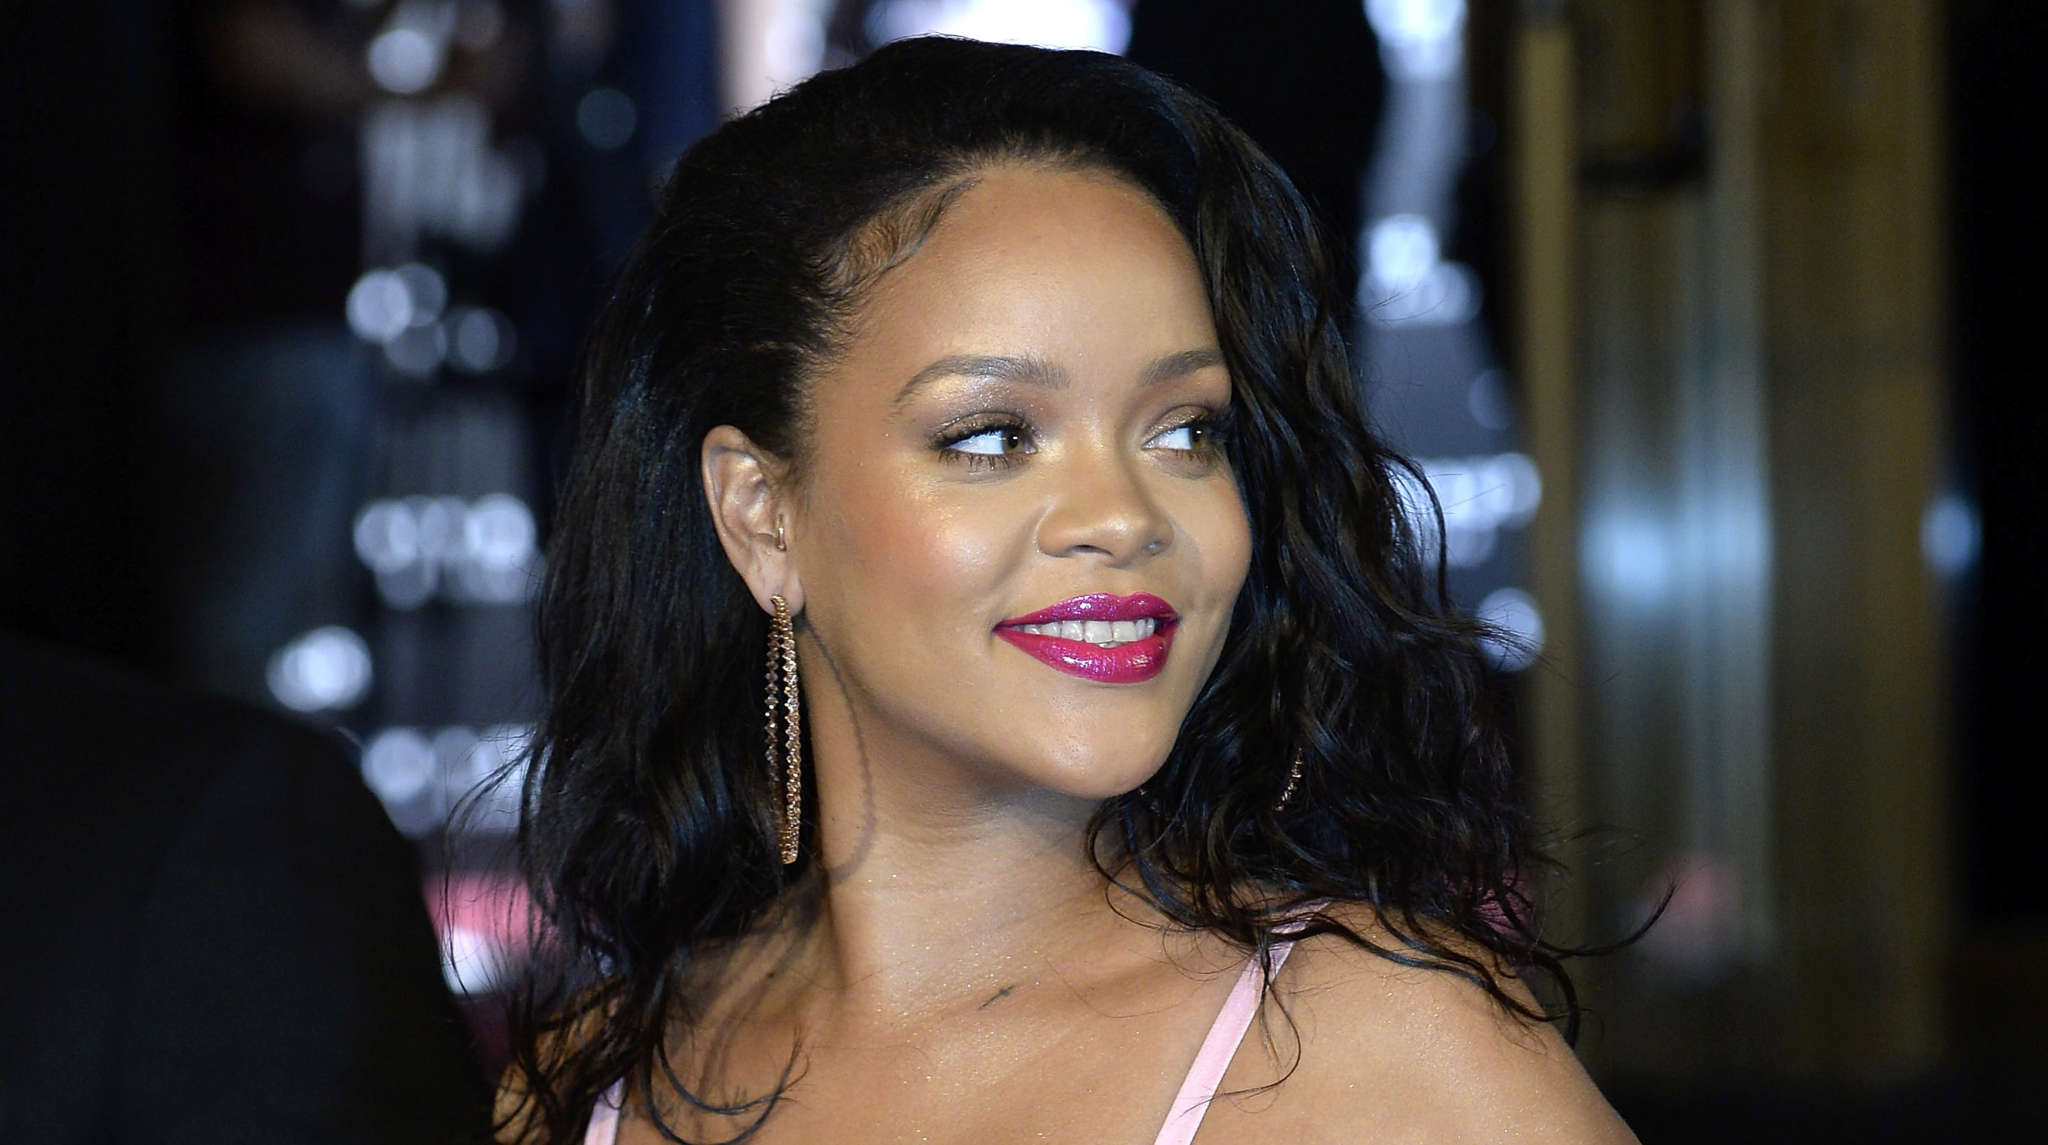 Rihanna Will Have A Museum Dedicated To Her In Barbados